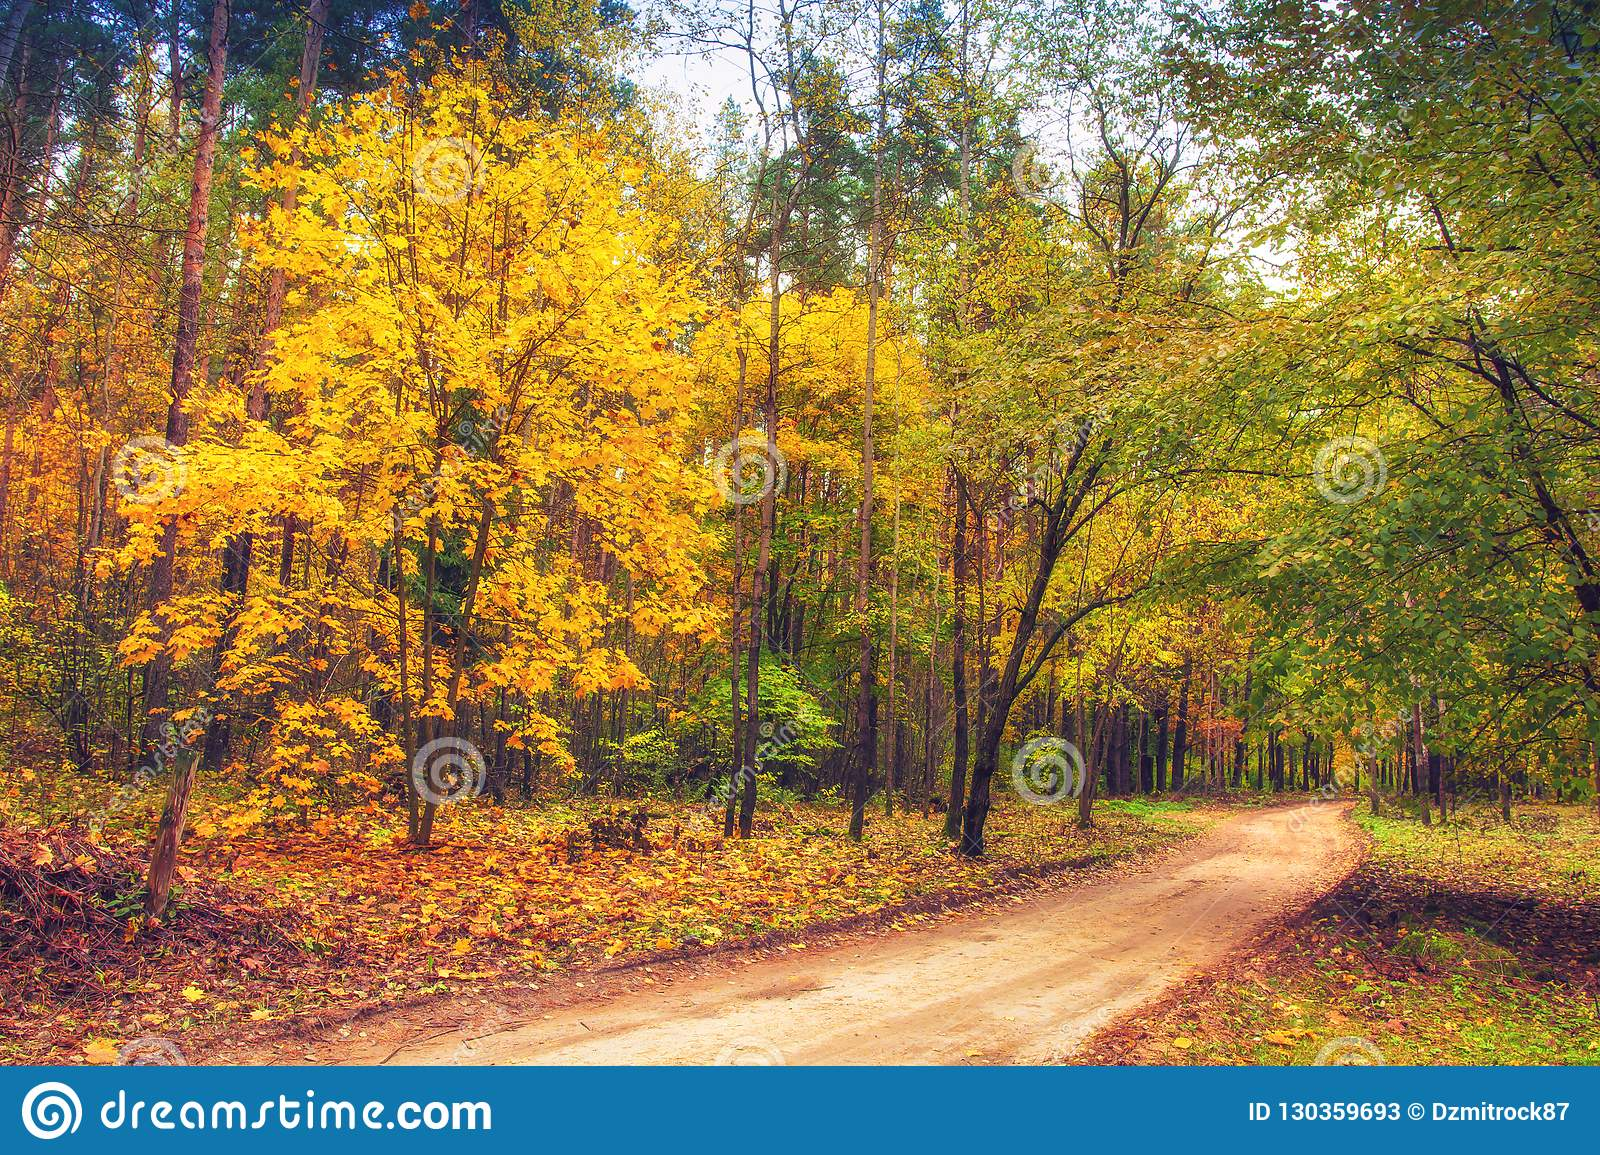 Road in autumn forest. Nature landscape. Fall. Colorful trees in forest. Yellow leaves on trees in woodland